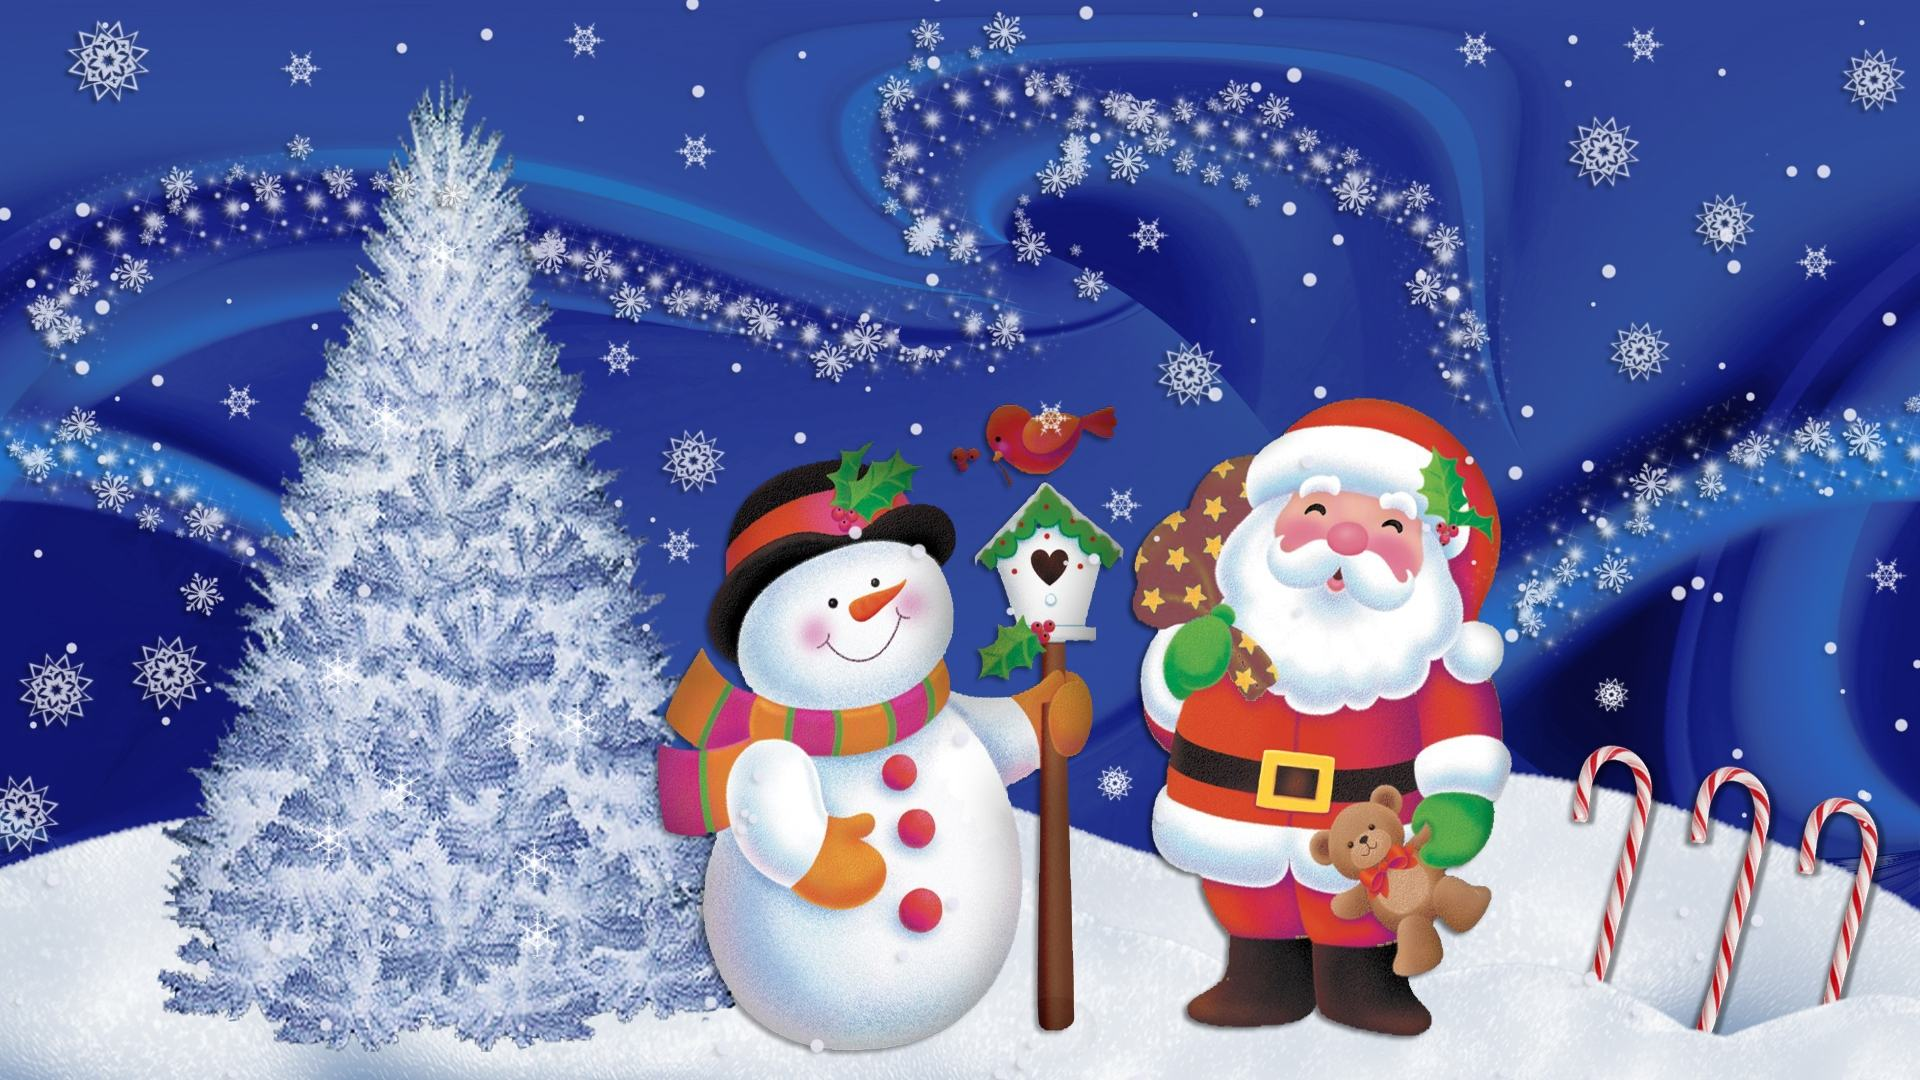 animated christmas wallpaper (24)